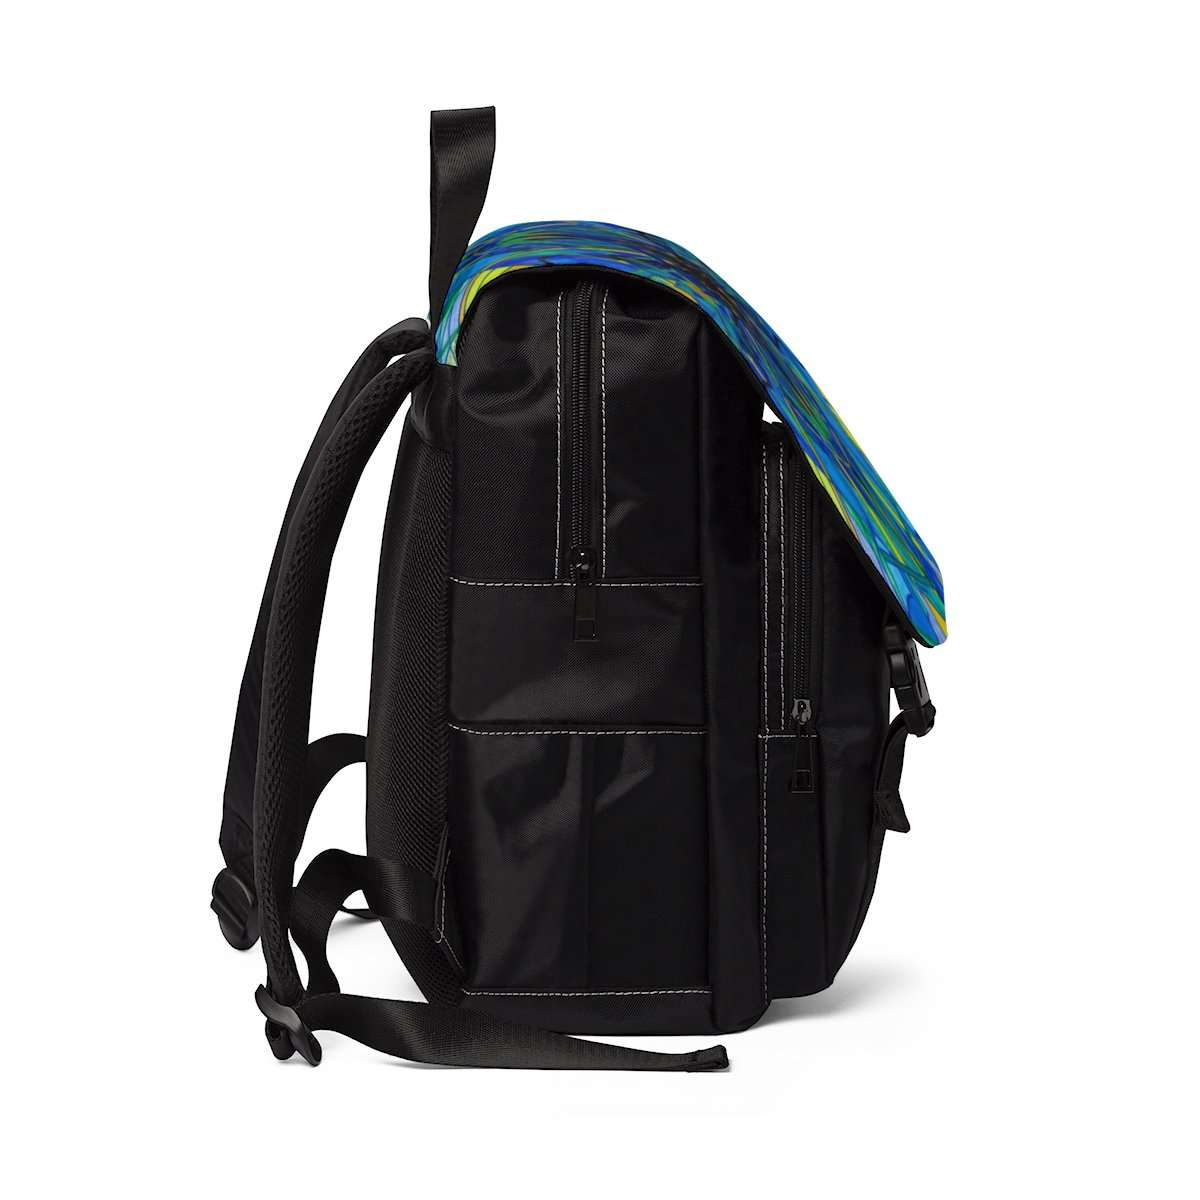 Emotional Expression - Unisex Casual Shoulder Backpack